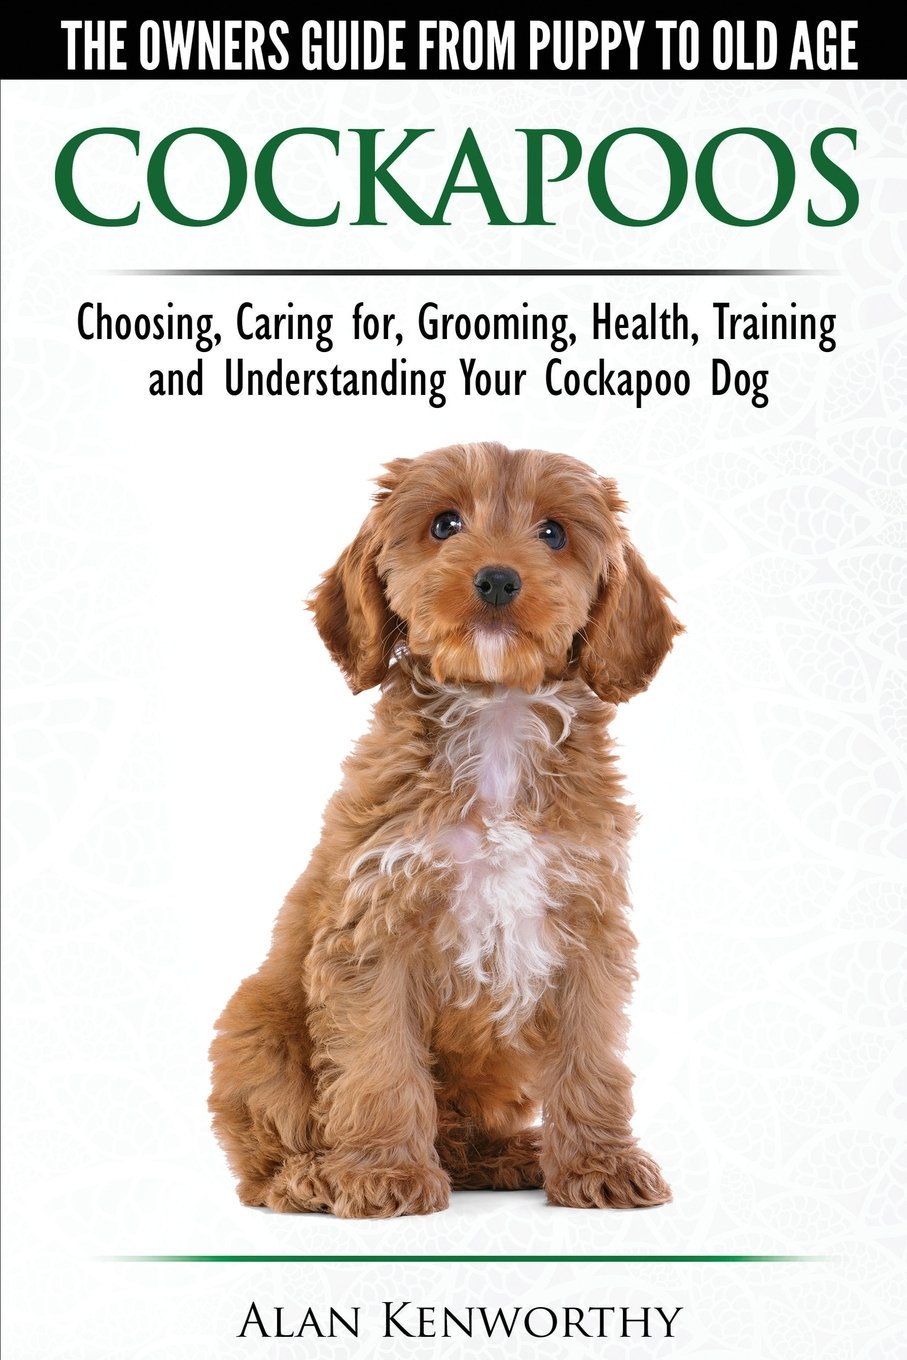 Cockapoos-The-Owners-Guide-from-Puppy-to-Old-Age-Choosing-Caring-for-Grooming-Health-Training-and-Understanding-Your-Cockapoo-Dog